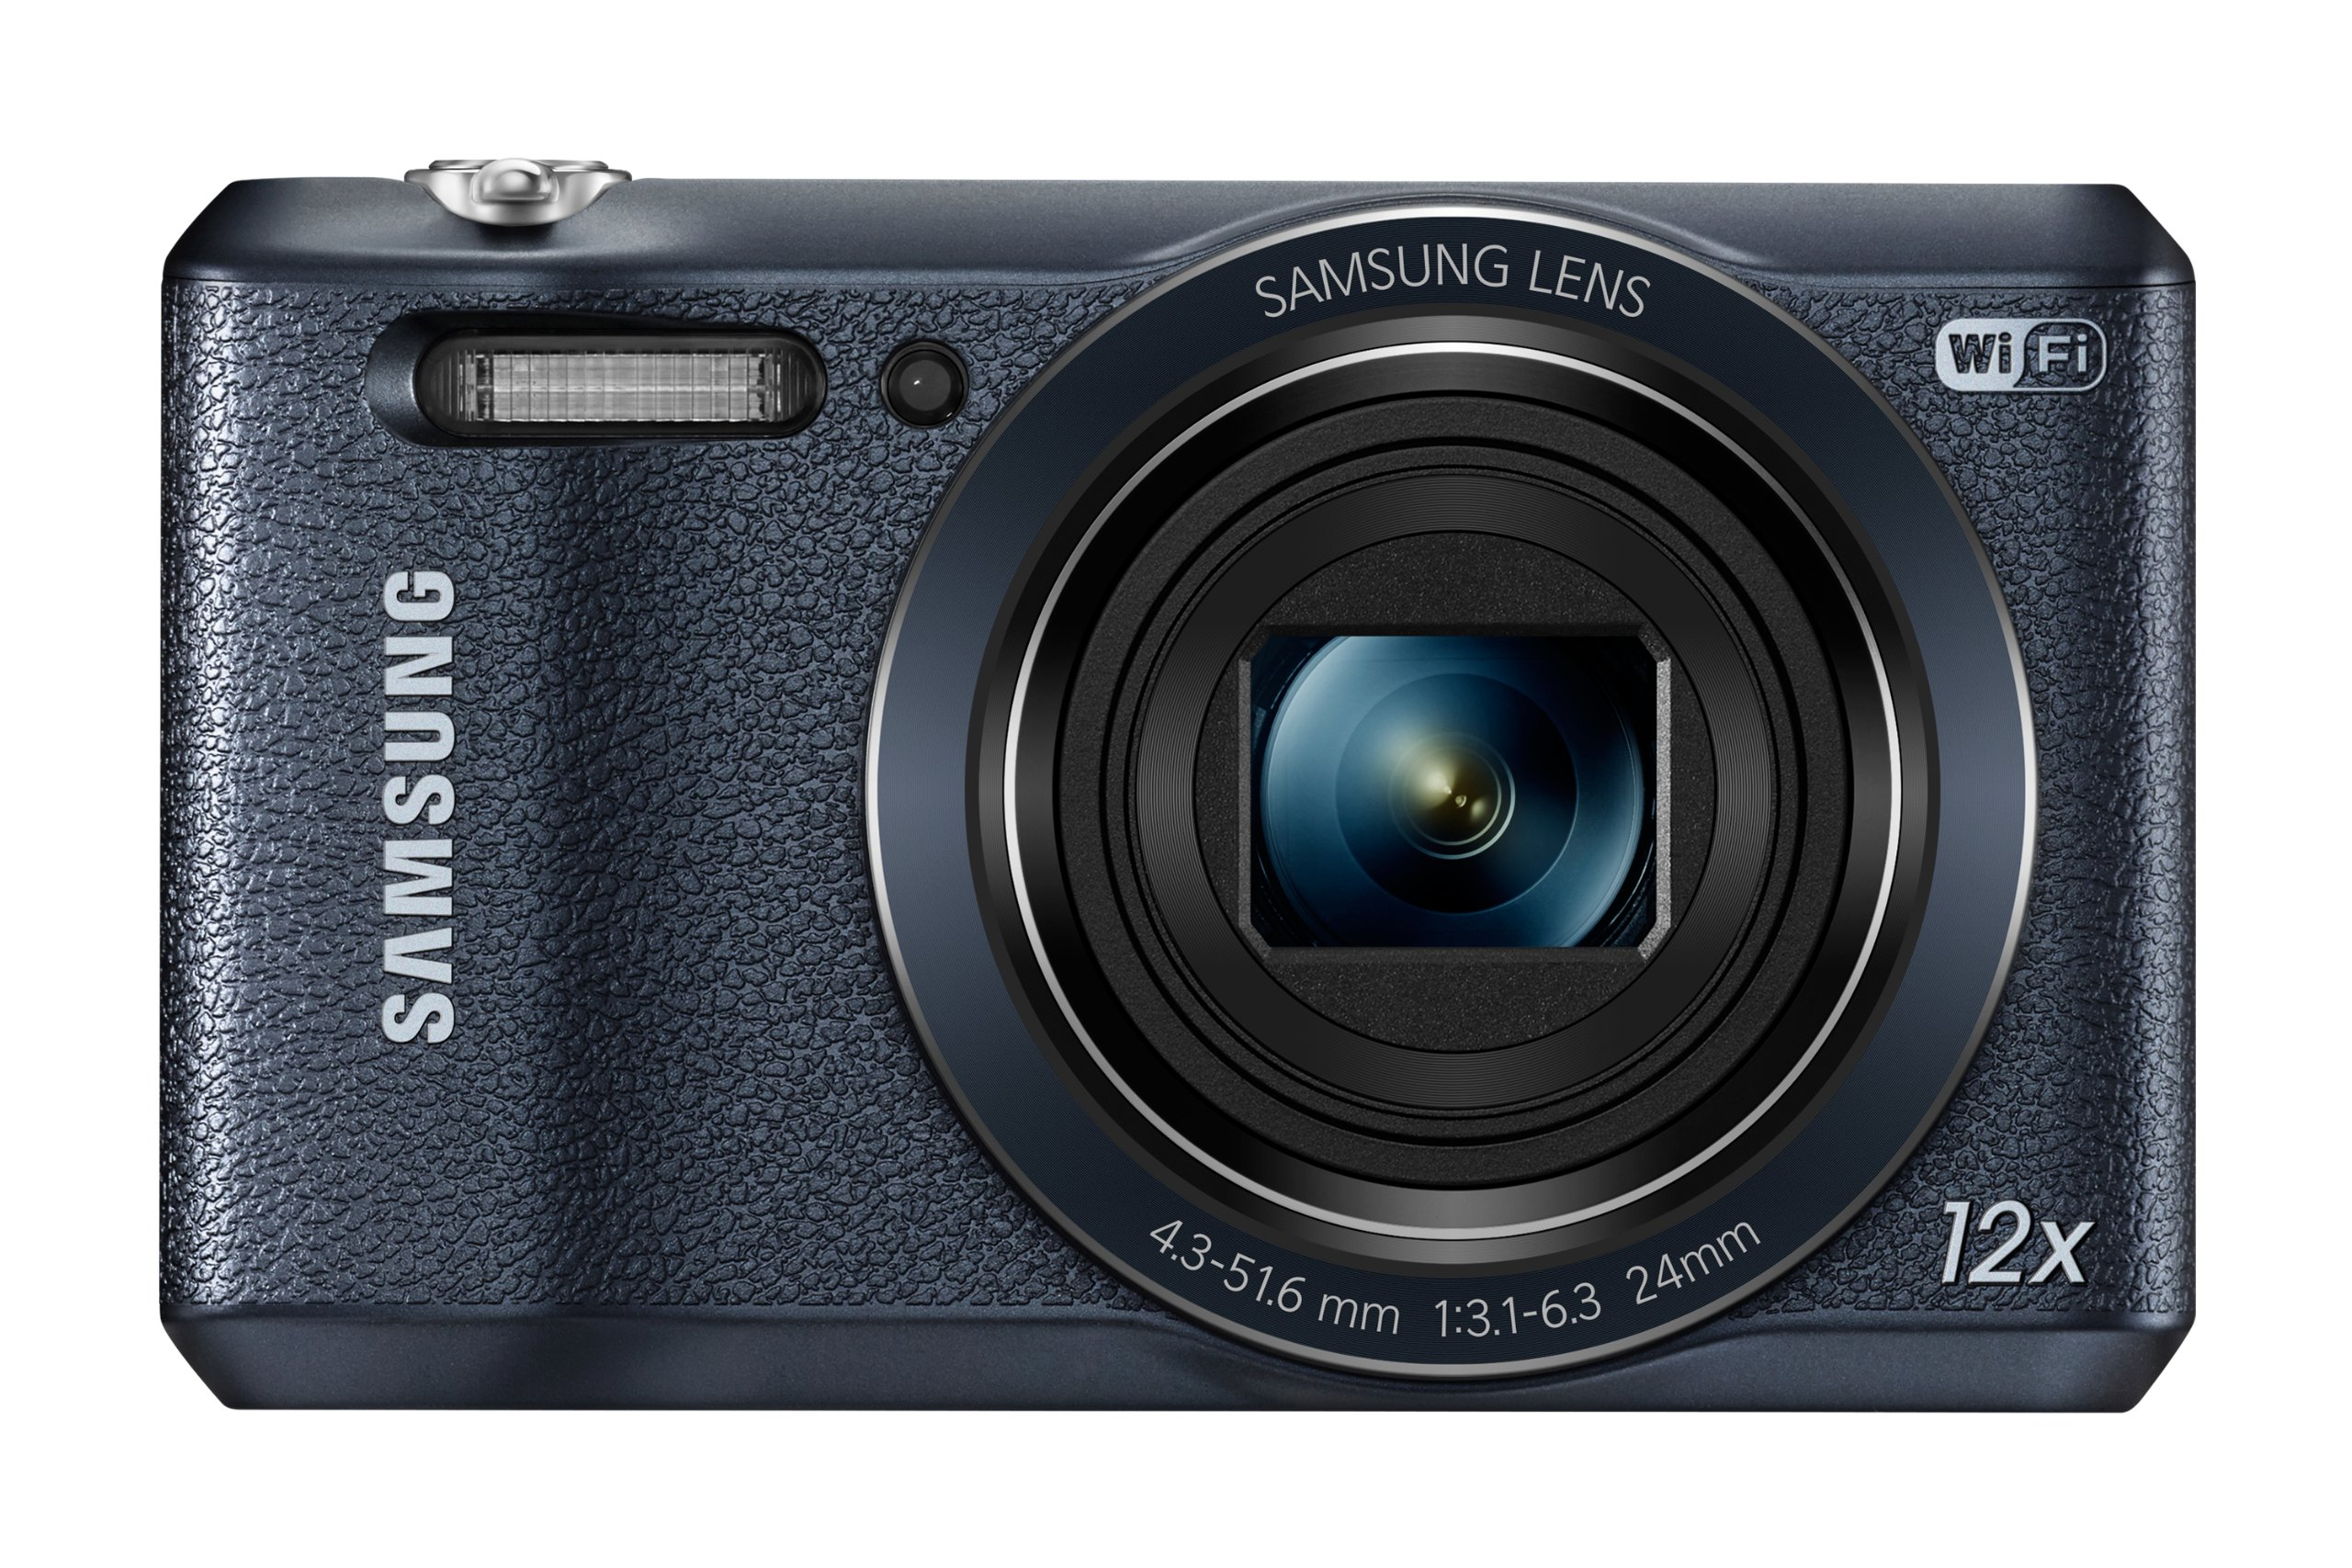 Samsung WB35F 16.2MP Smart WiFi & NFC Digital Camera with 12x Optical Zoom and 2.7'' LCD (Black) by Samsung